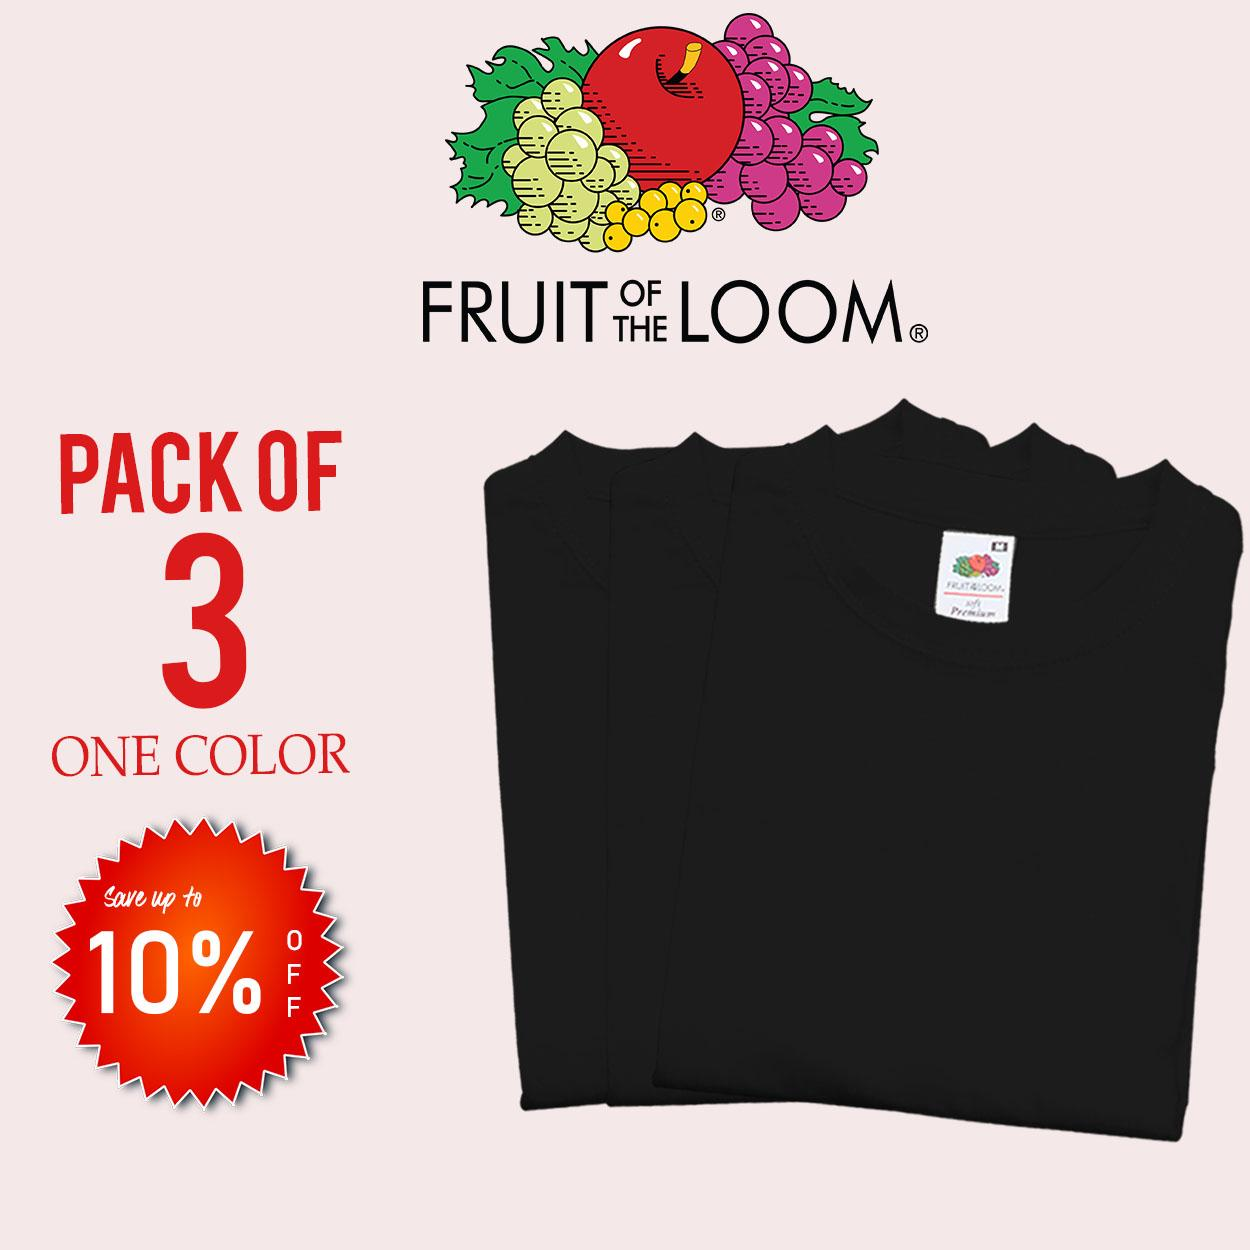 Fruit of the Loom Philippines  Fruit of the Loom price list ... 96dd8bd01c11